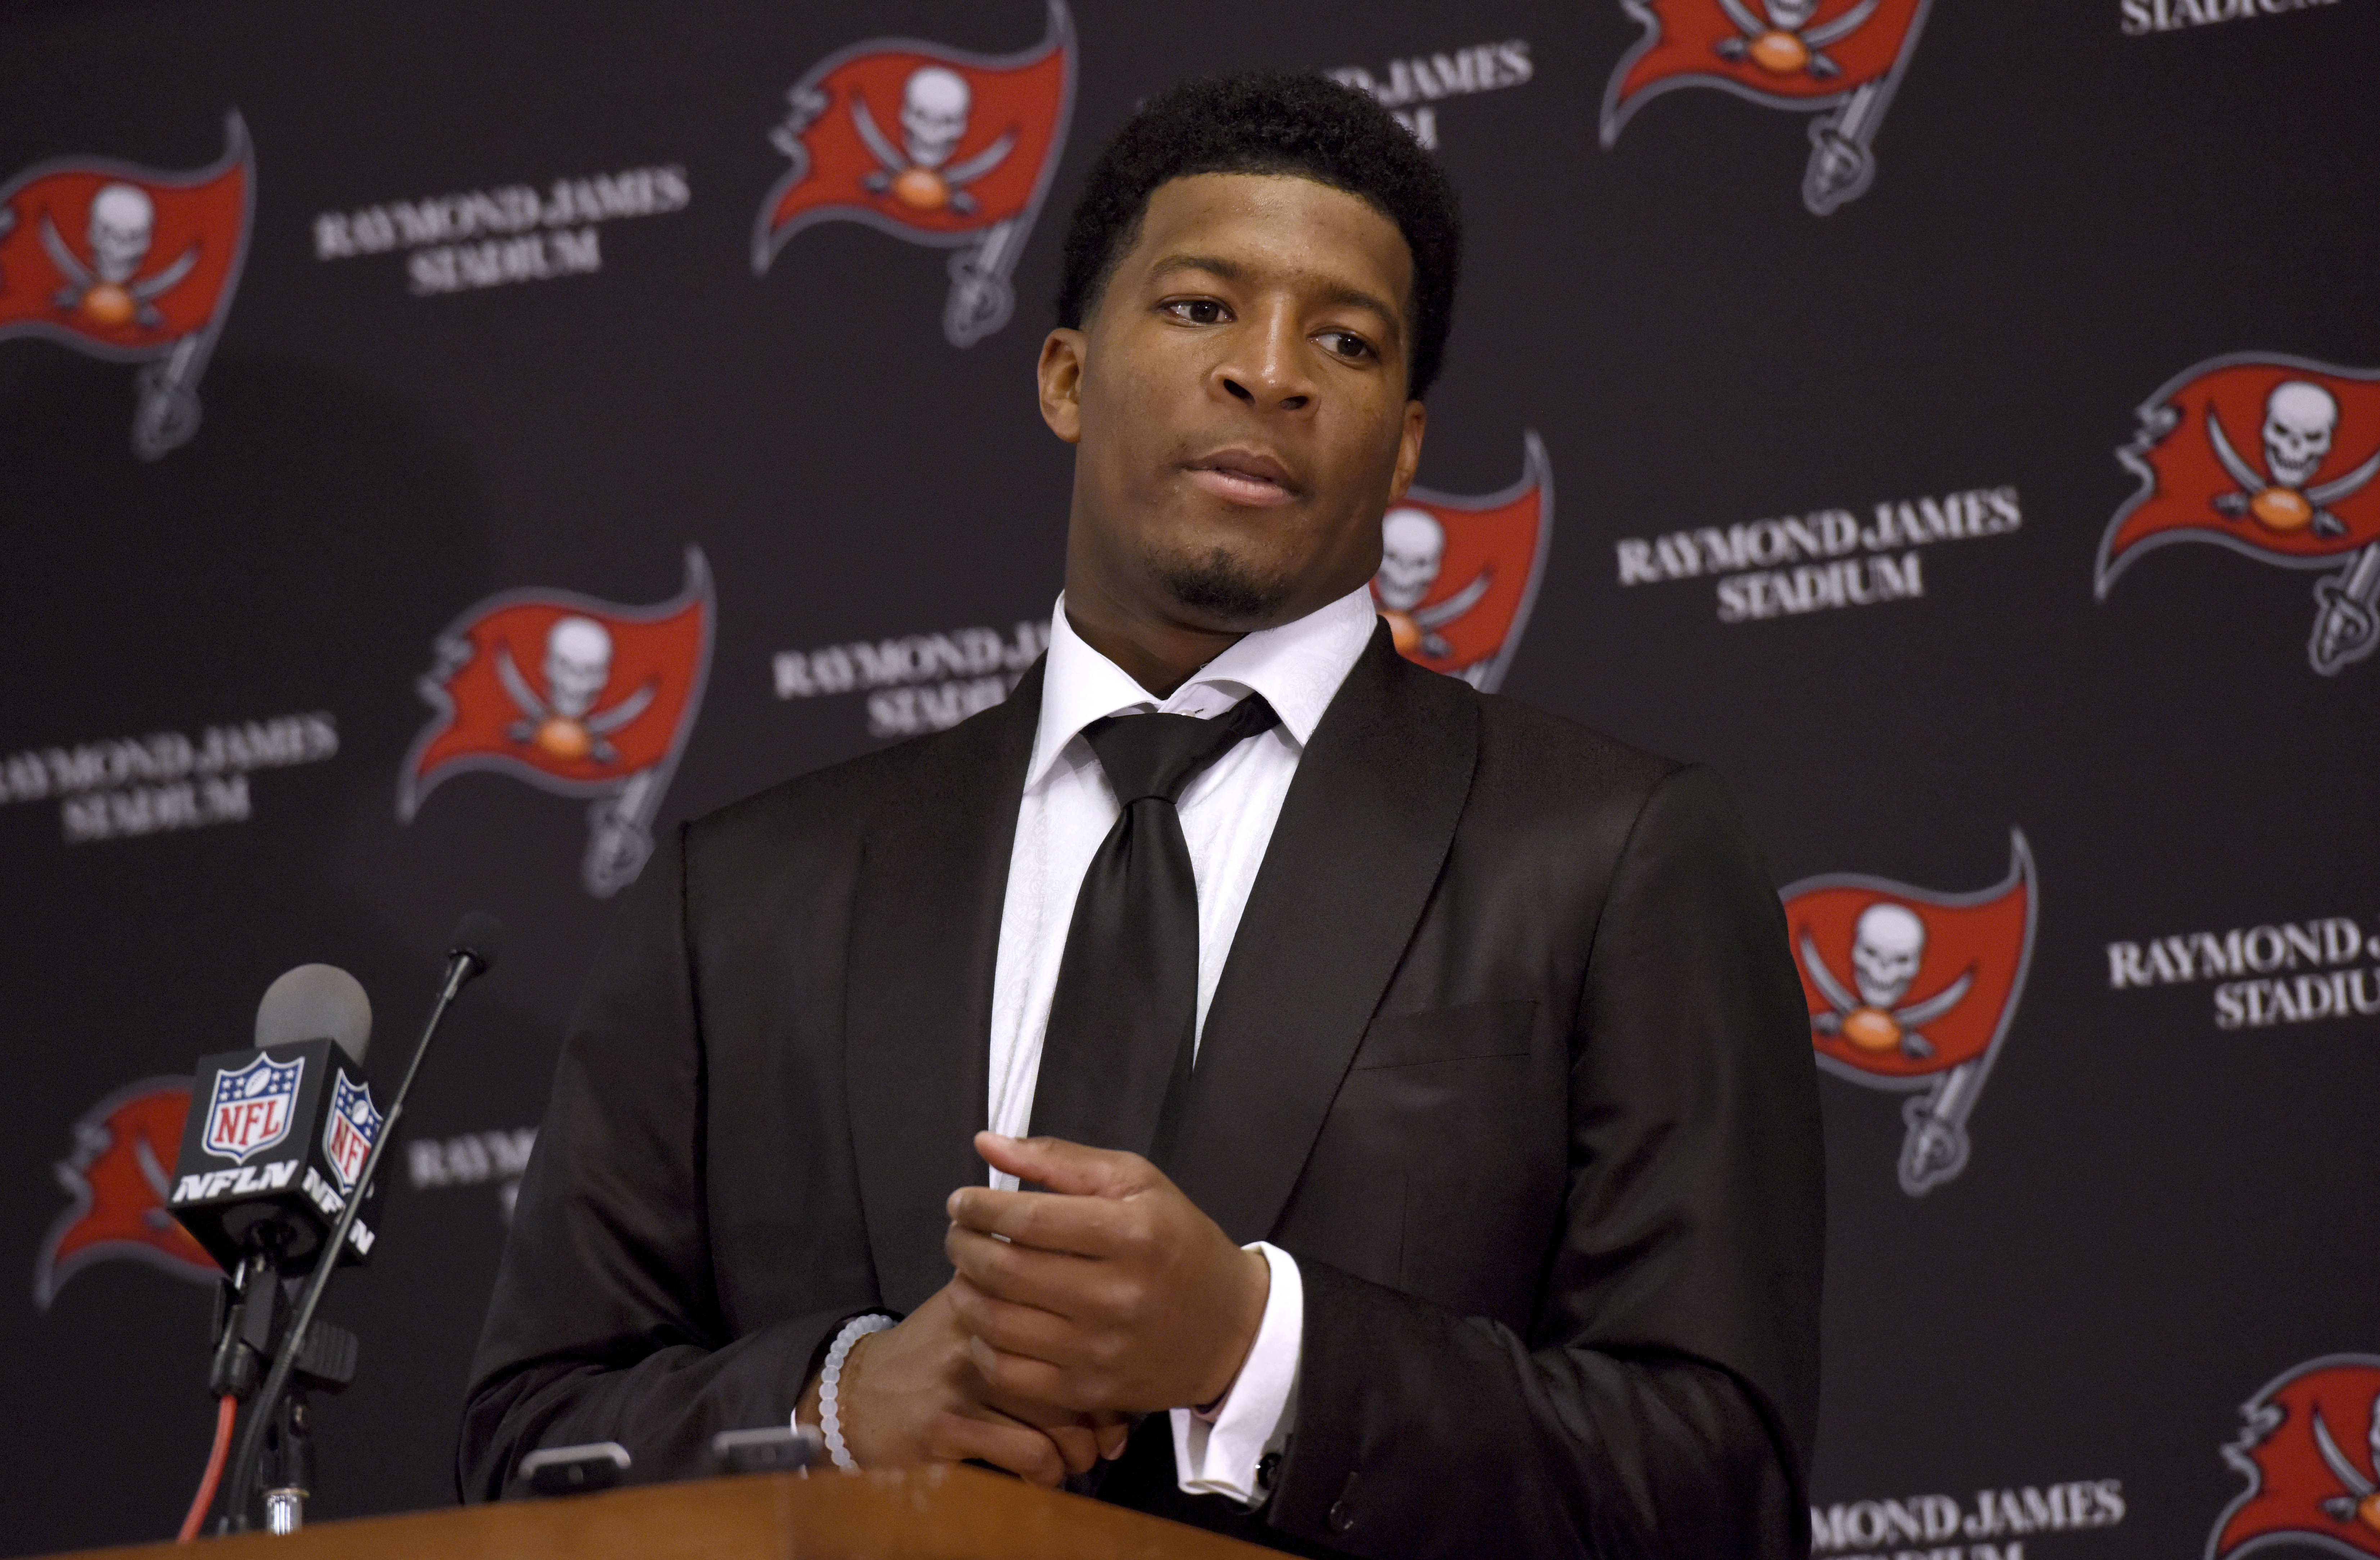 FILE - In this Sunday, Nov. 27, 2016 file photo, Tampa Bay Buccaneers quarterback Jameis Winston (3) speaks to the media following a win over the Seattle Seahawks in an NFL football game, in Tampa, Fla. Winston and the woman who accused him of rape while